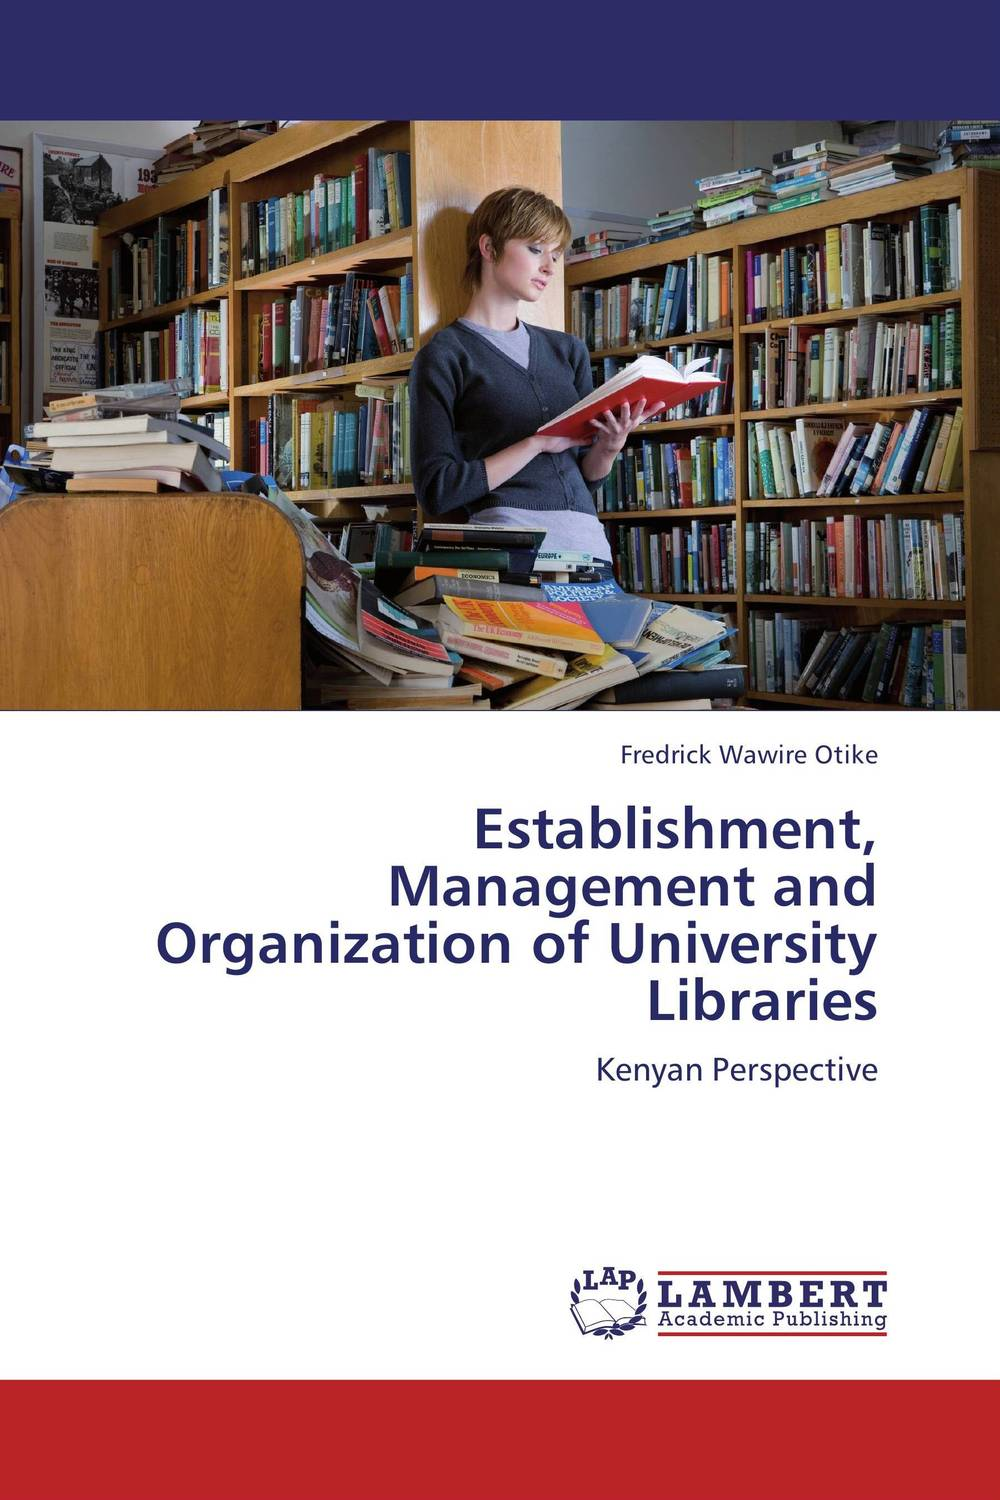 купить Establishment, Management and Organization of University Libraries недорого